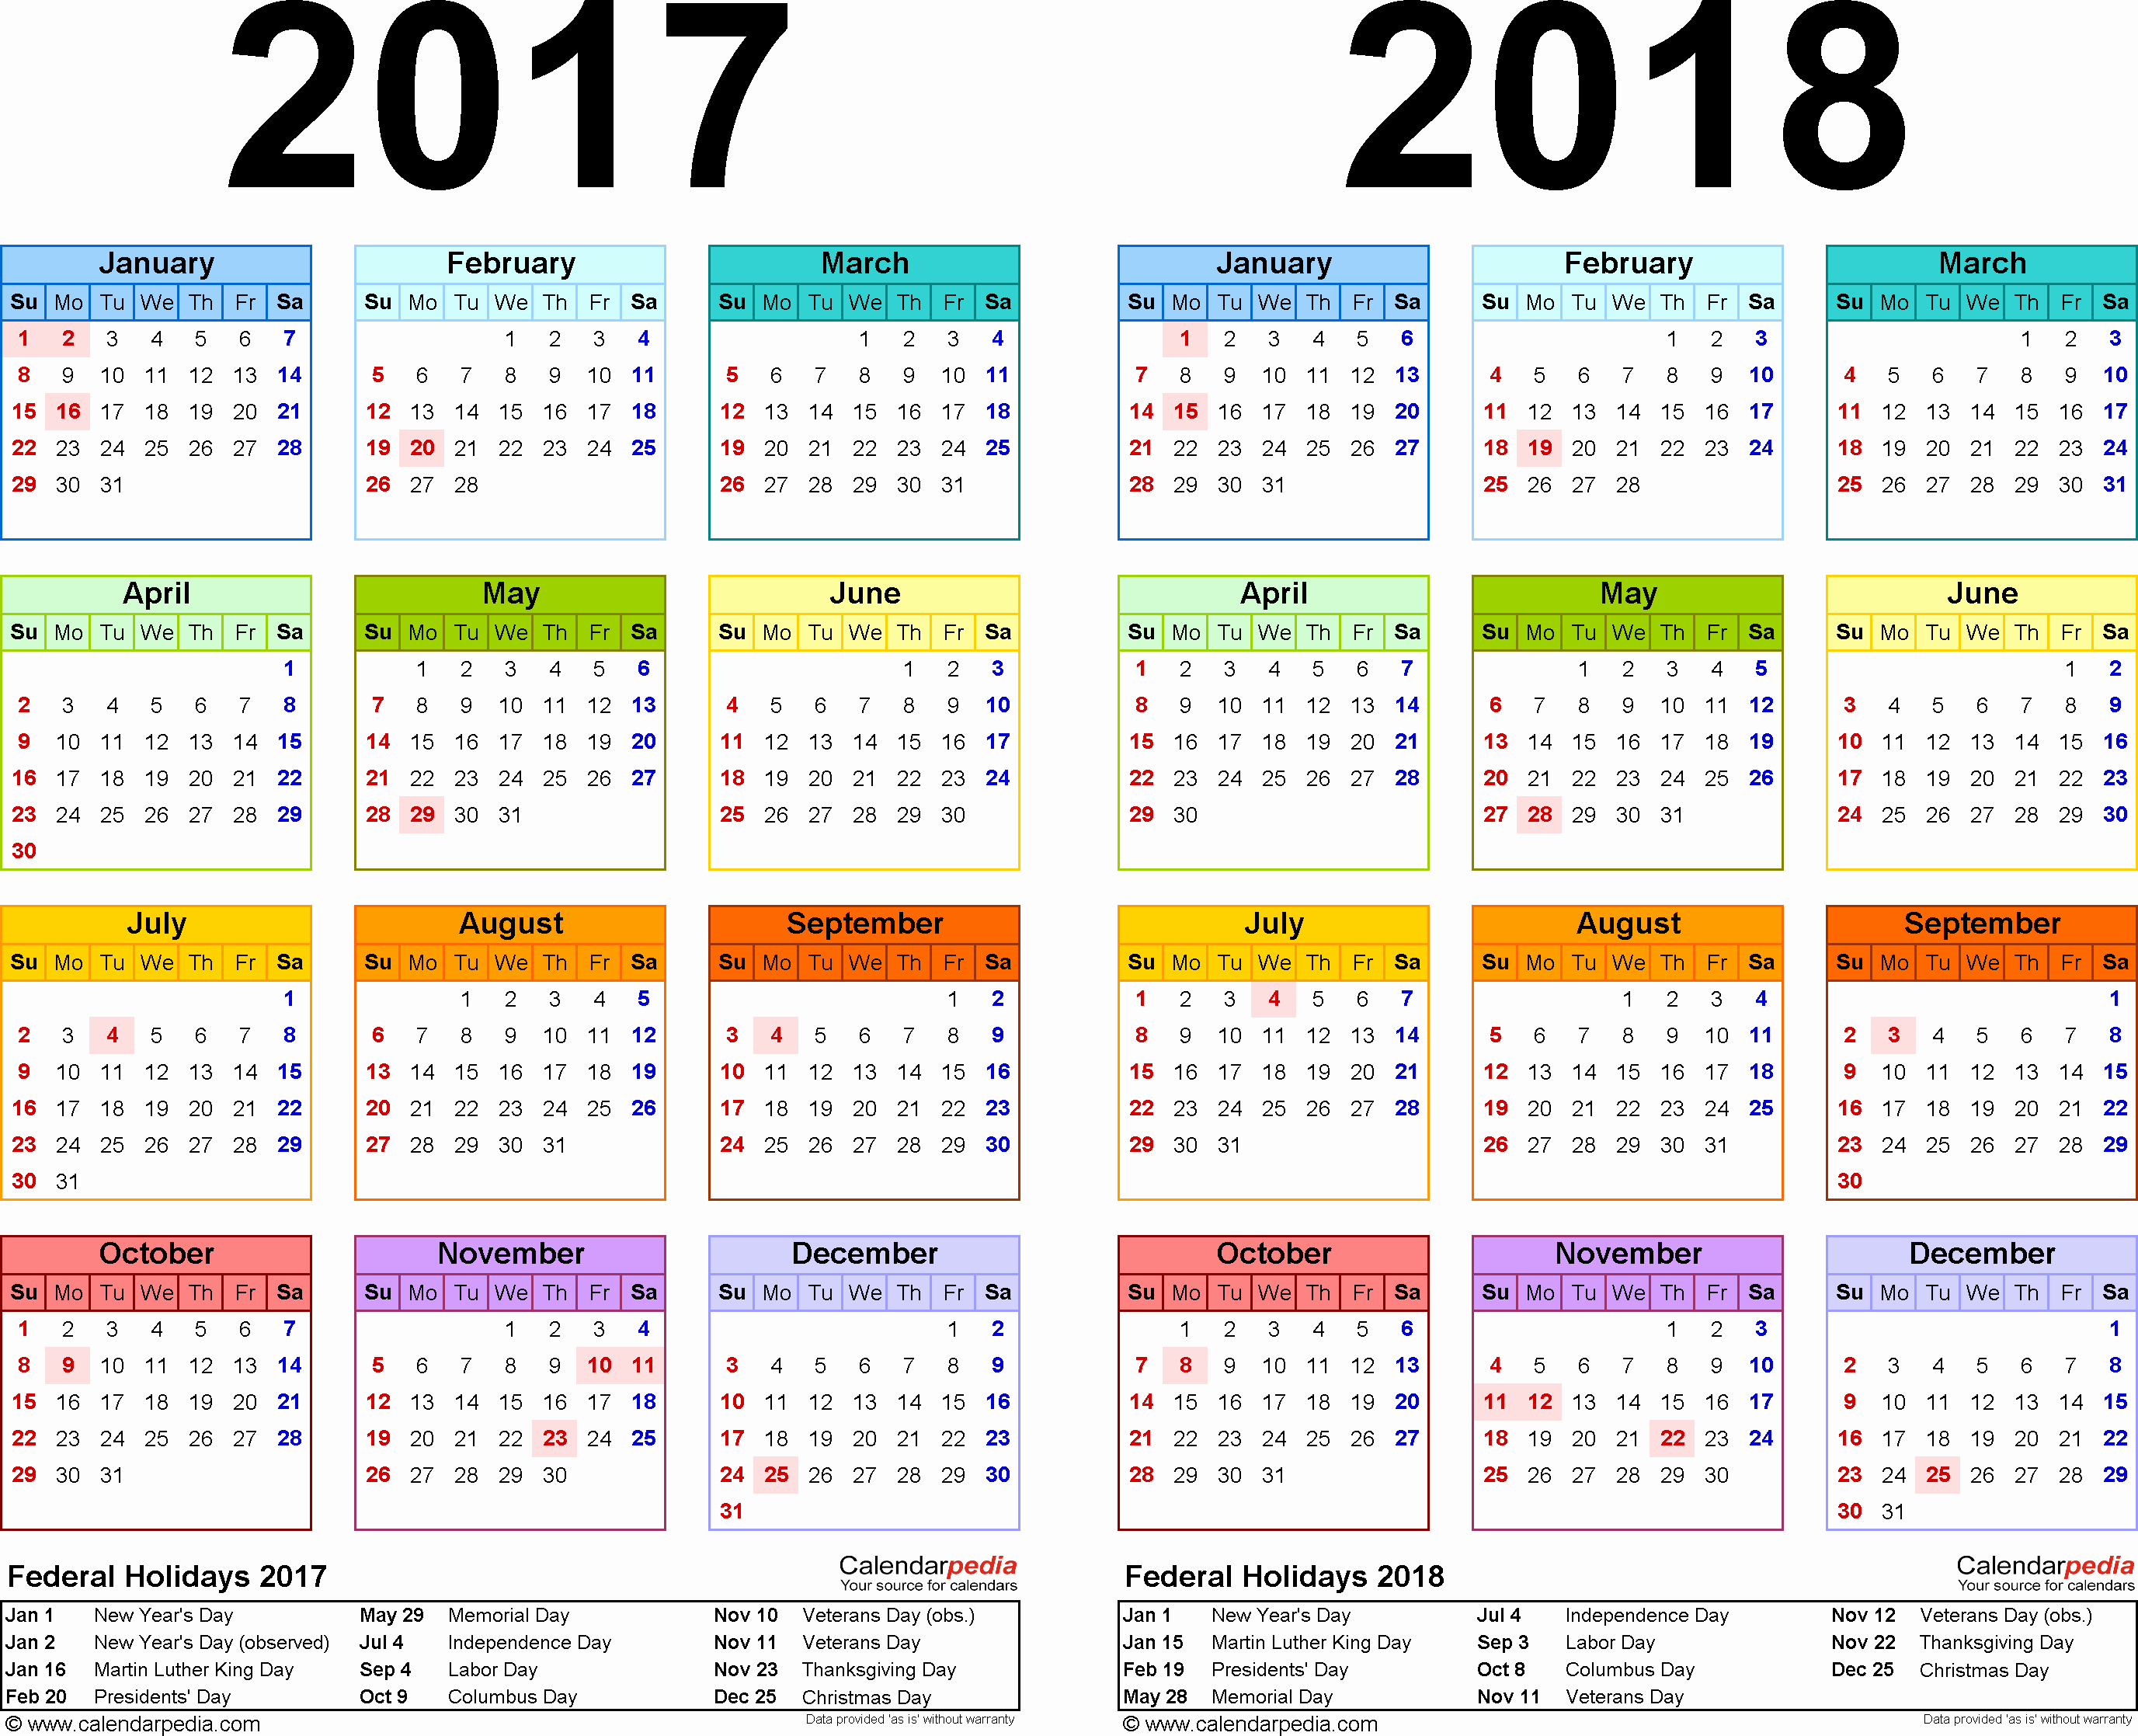 Excel Calendar 2017 with Holidays Awesome 2017 2018 Calendar Free Printable Two Year Excel Calendars